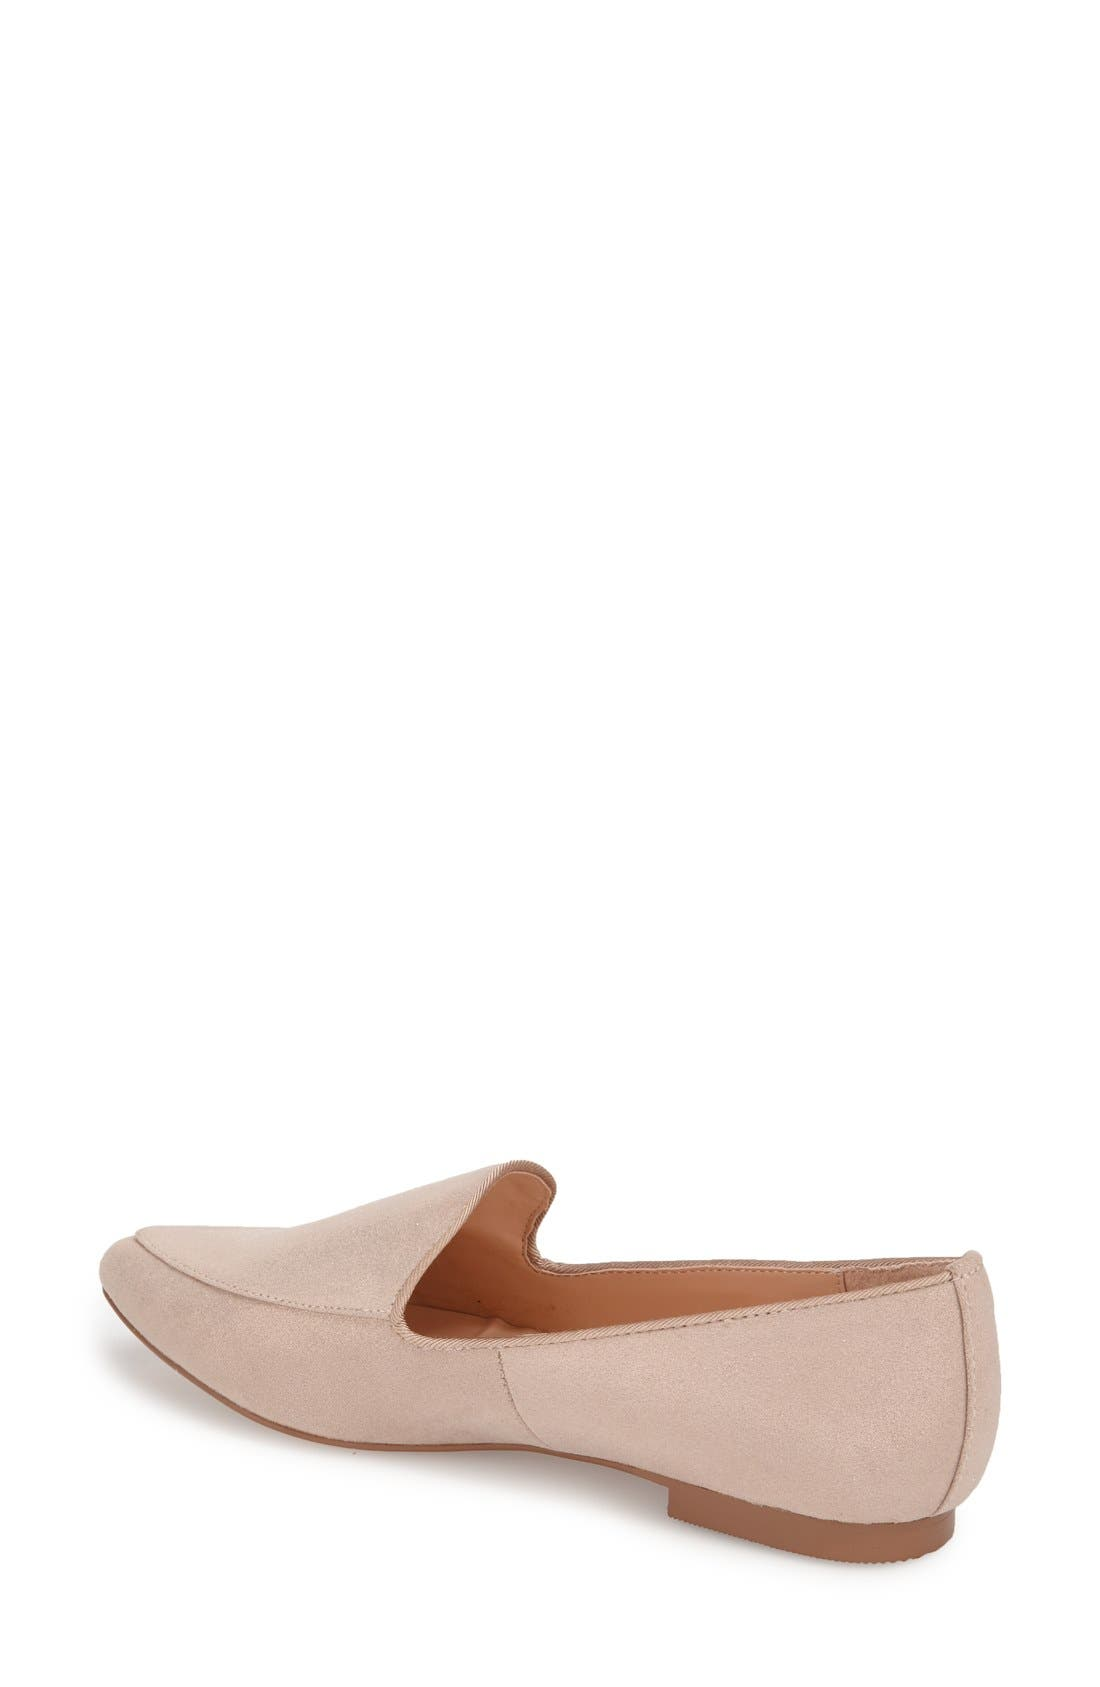 Alternate Image 2  - Sole Society 'Sean' Pointy Toe Loafer (Women)